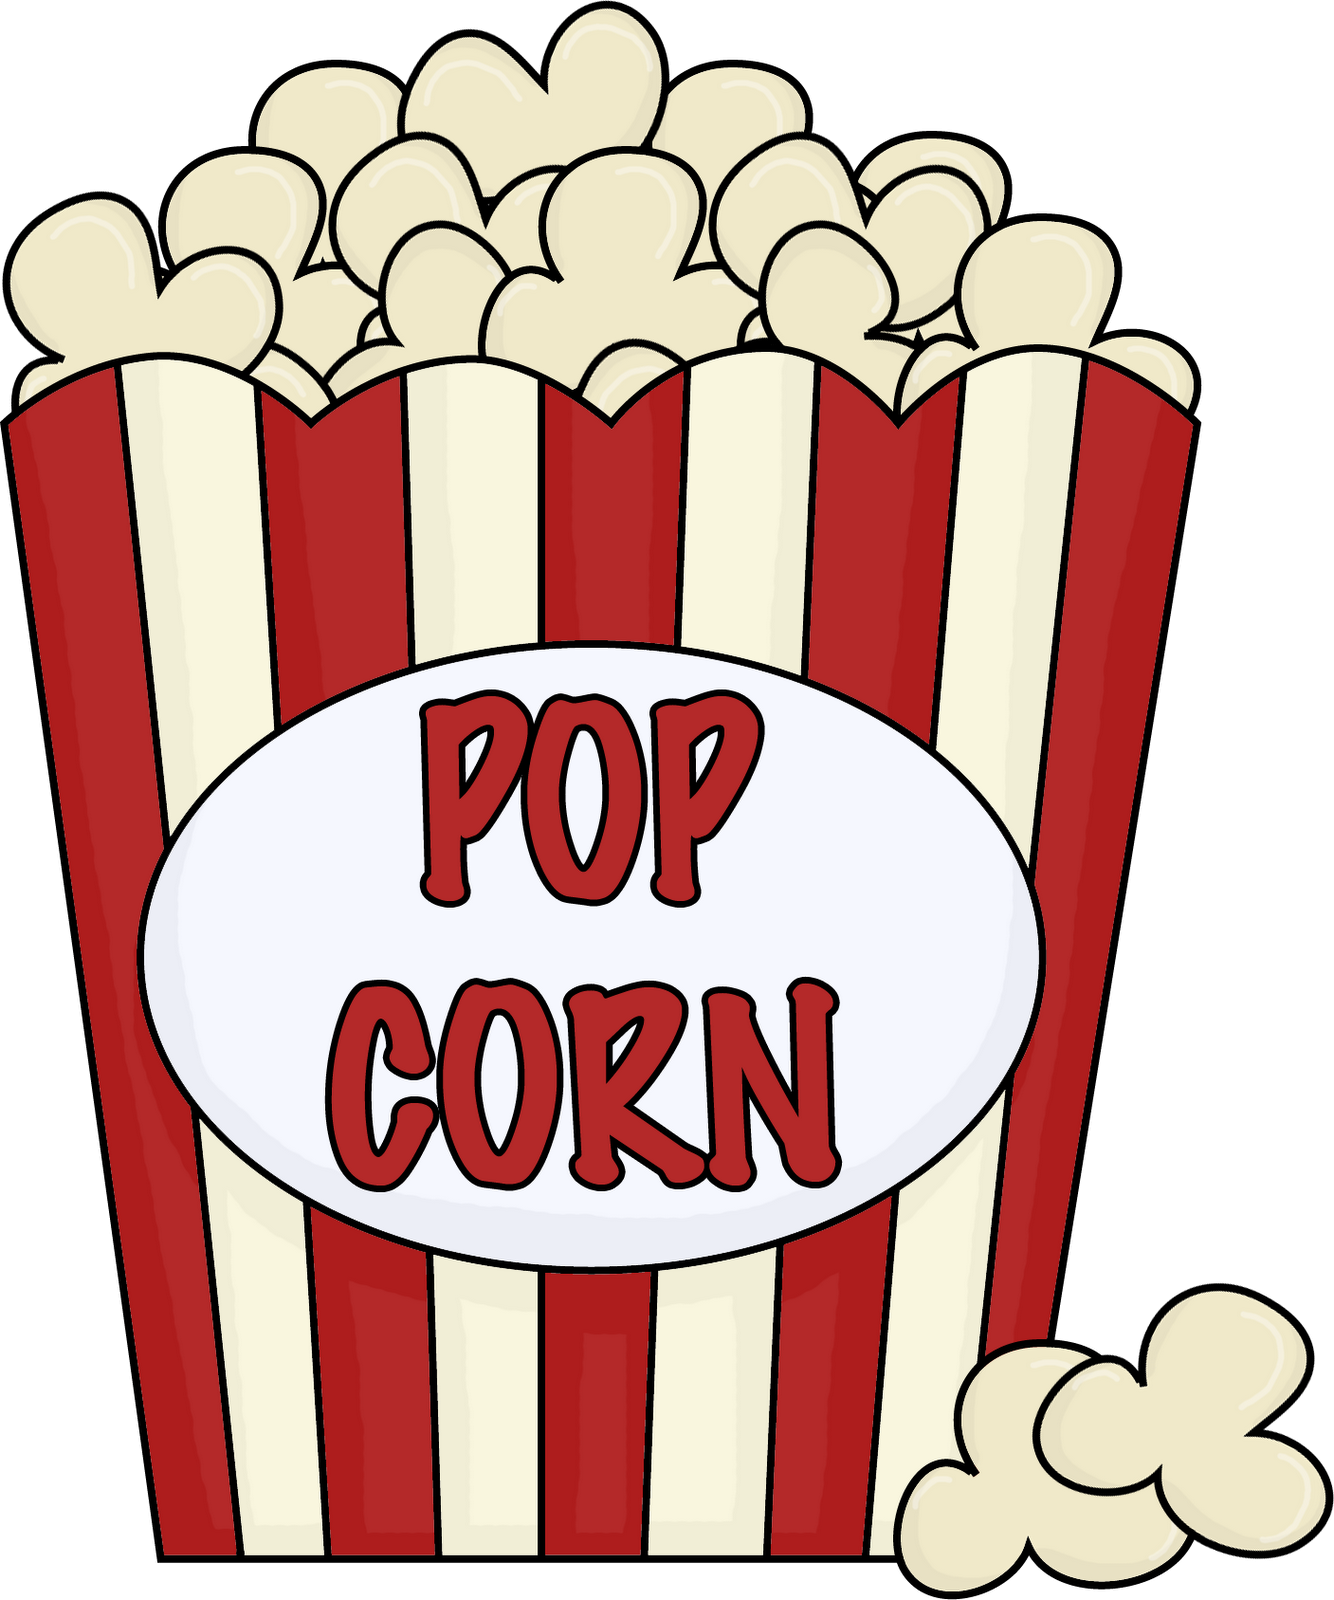 Popcorn Clip Art Black And White Free Clipart Images.